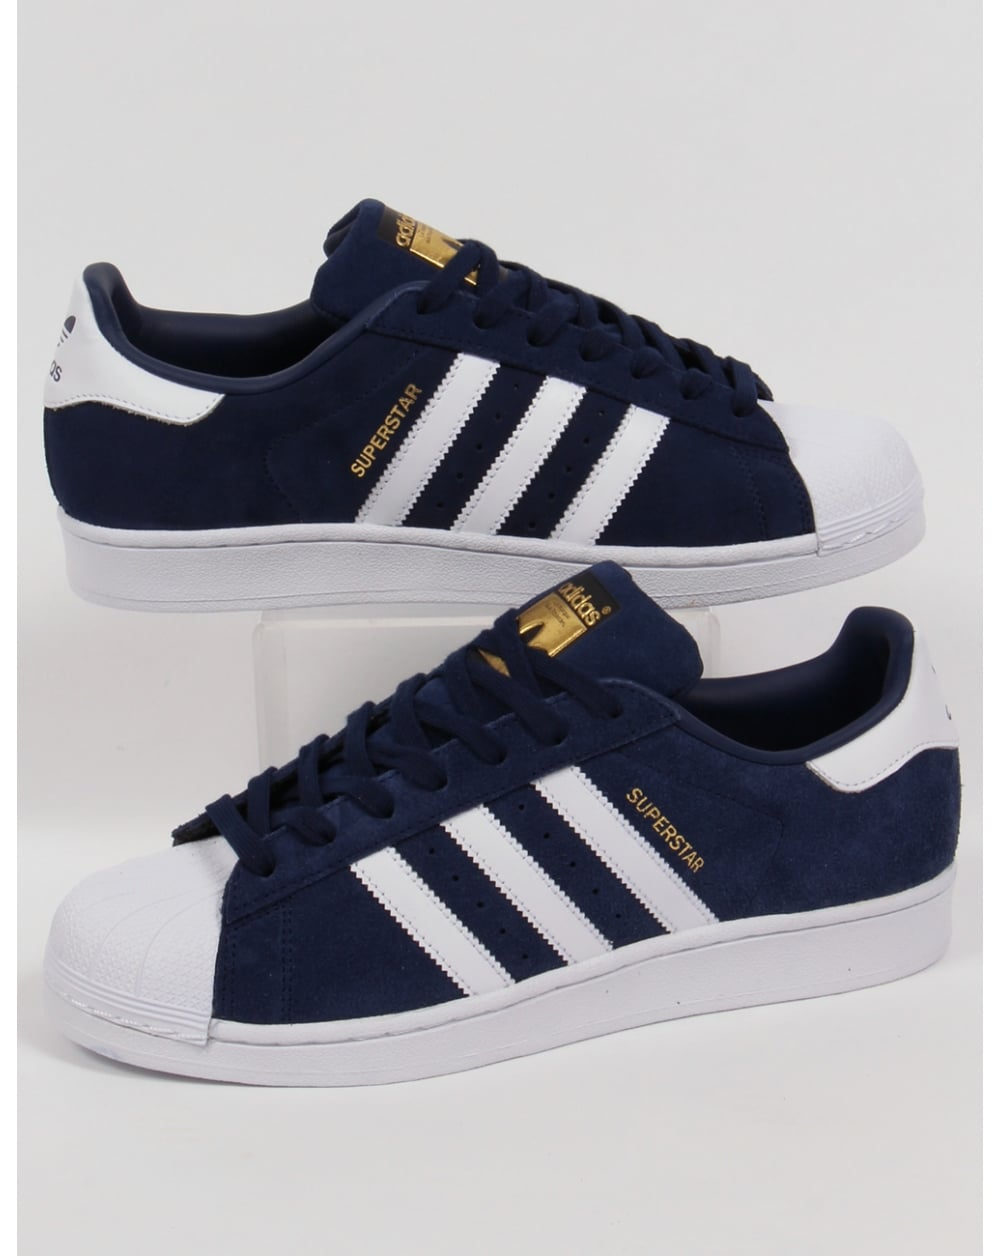 adidas Trainers Adidas Superstar Suede Trainers Navy white d30529cfe